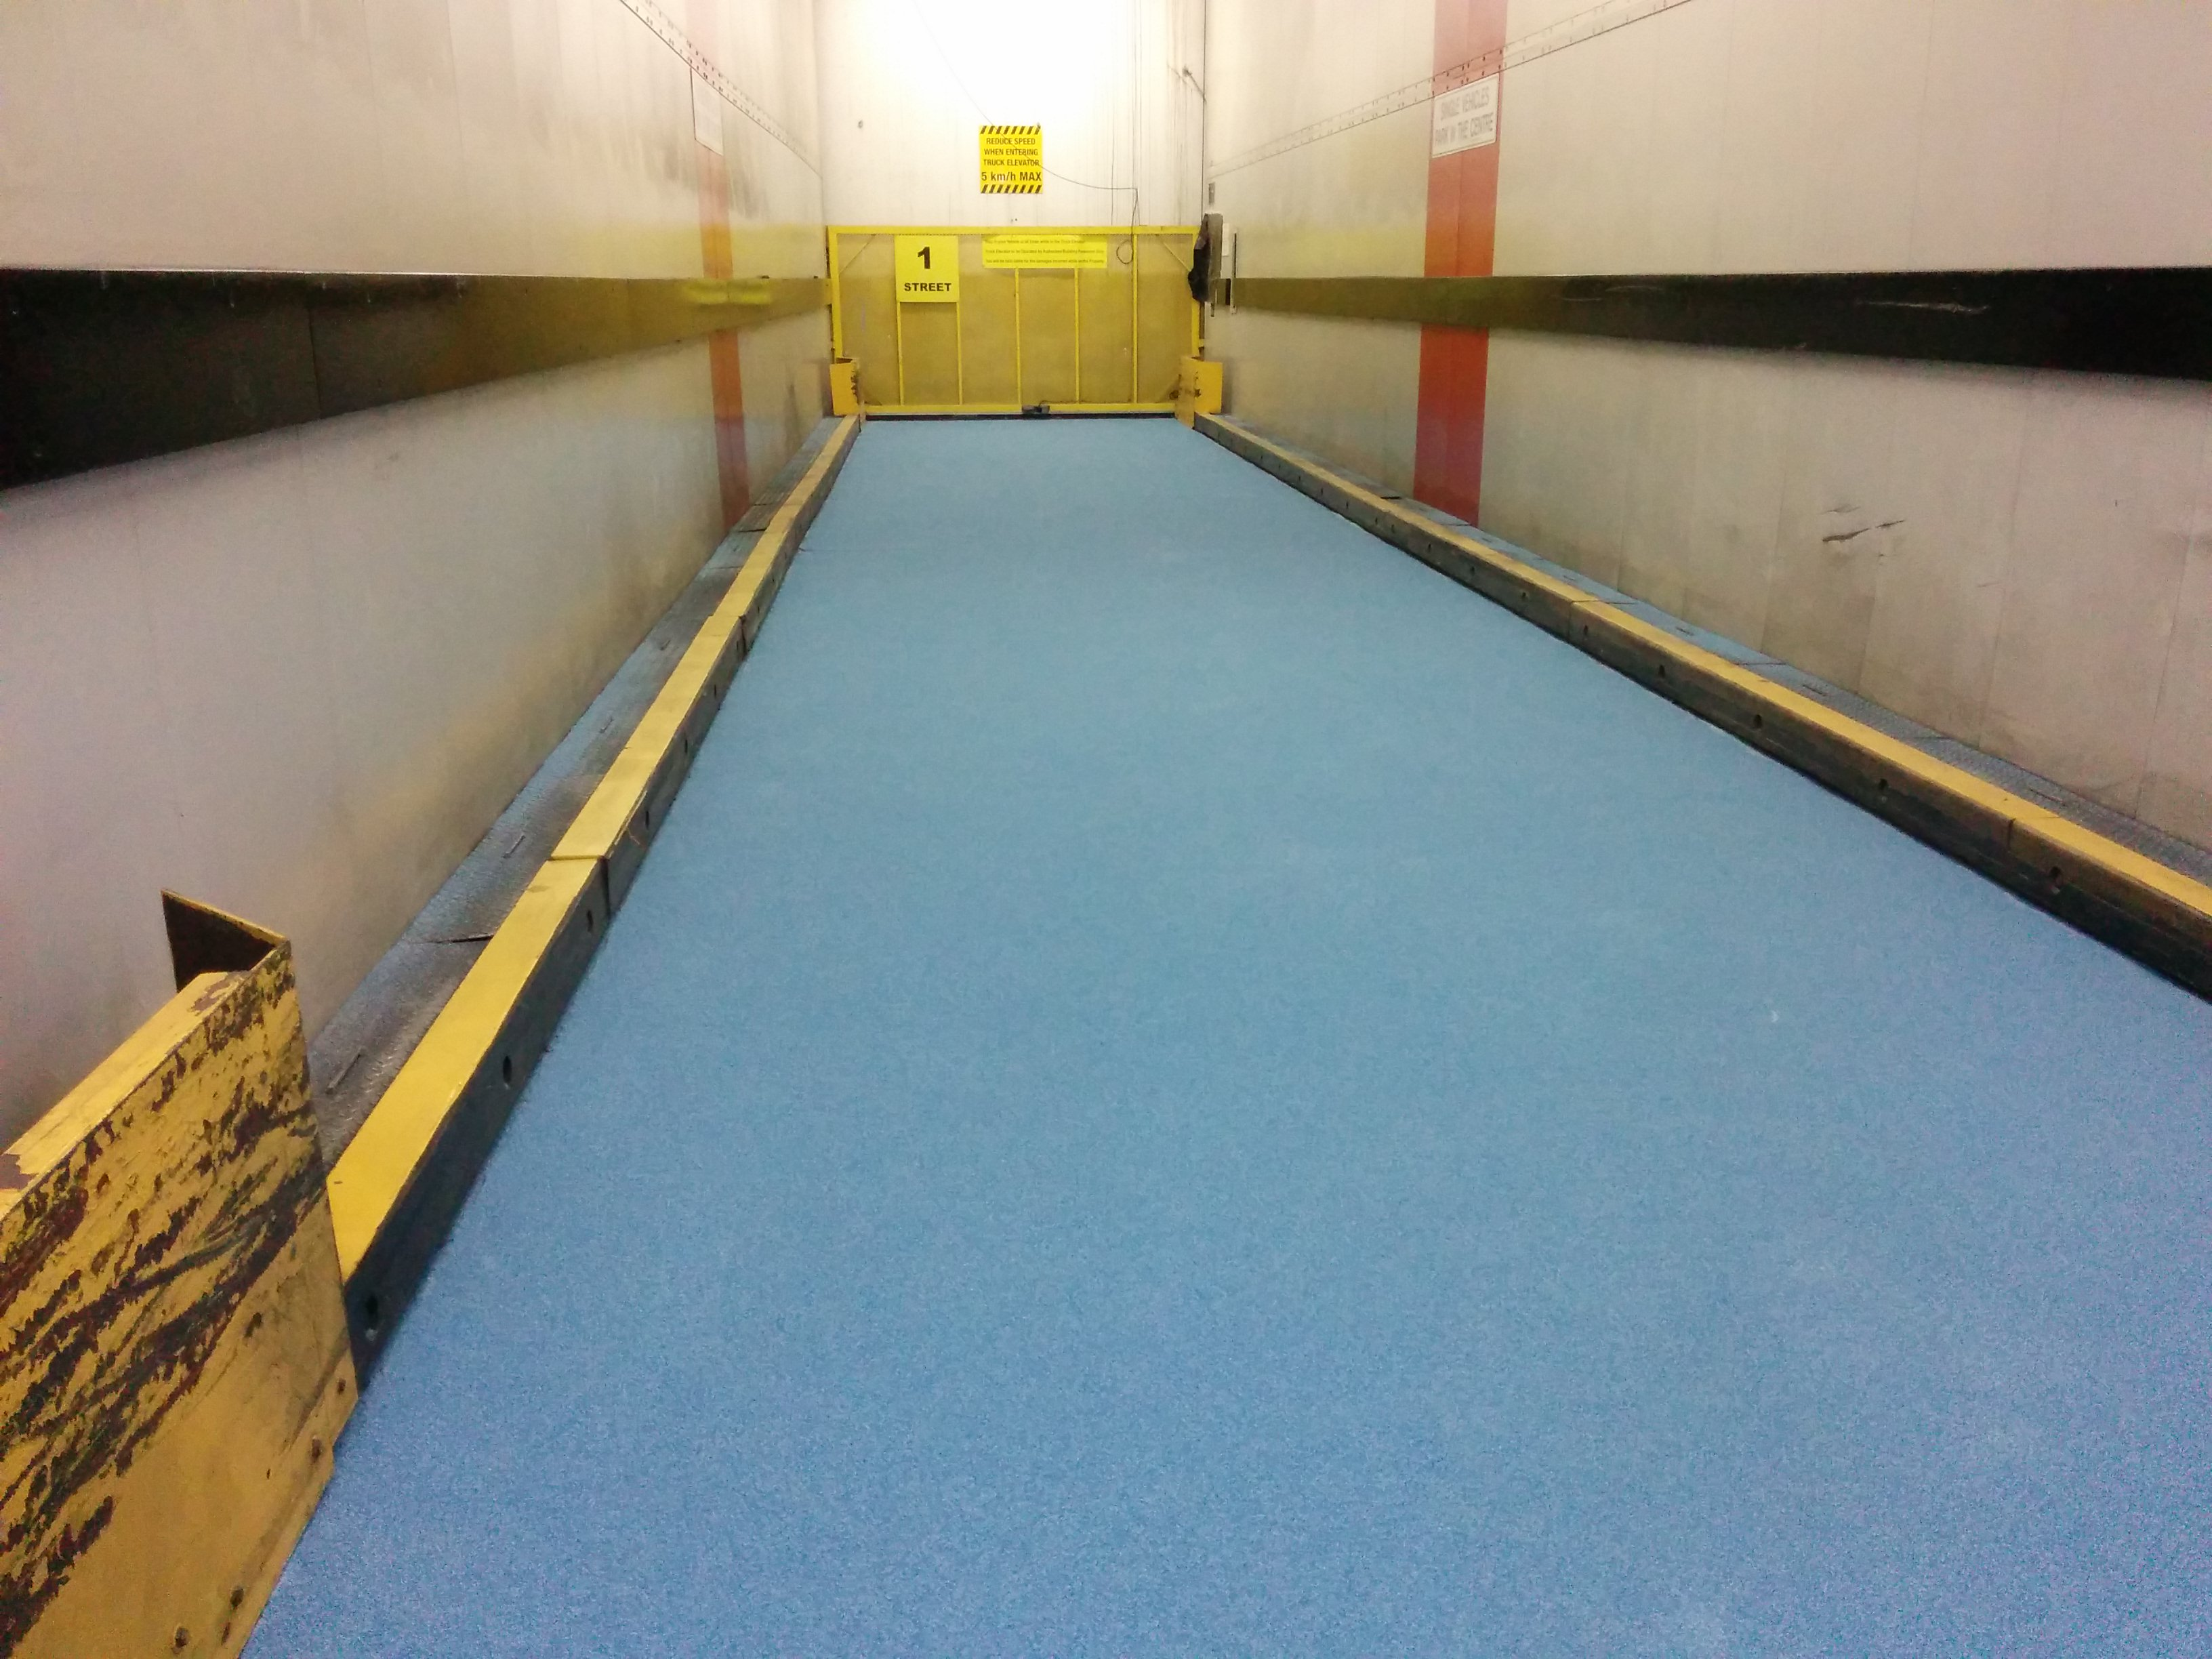 Commercial truck lift floor repair and protection at a high rise - airport facilities maintenance